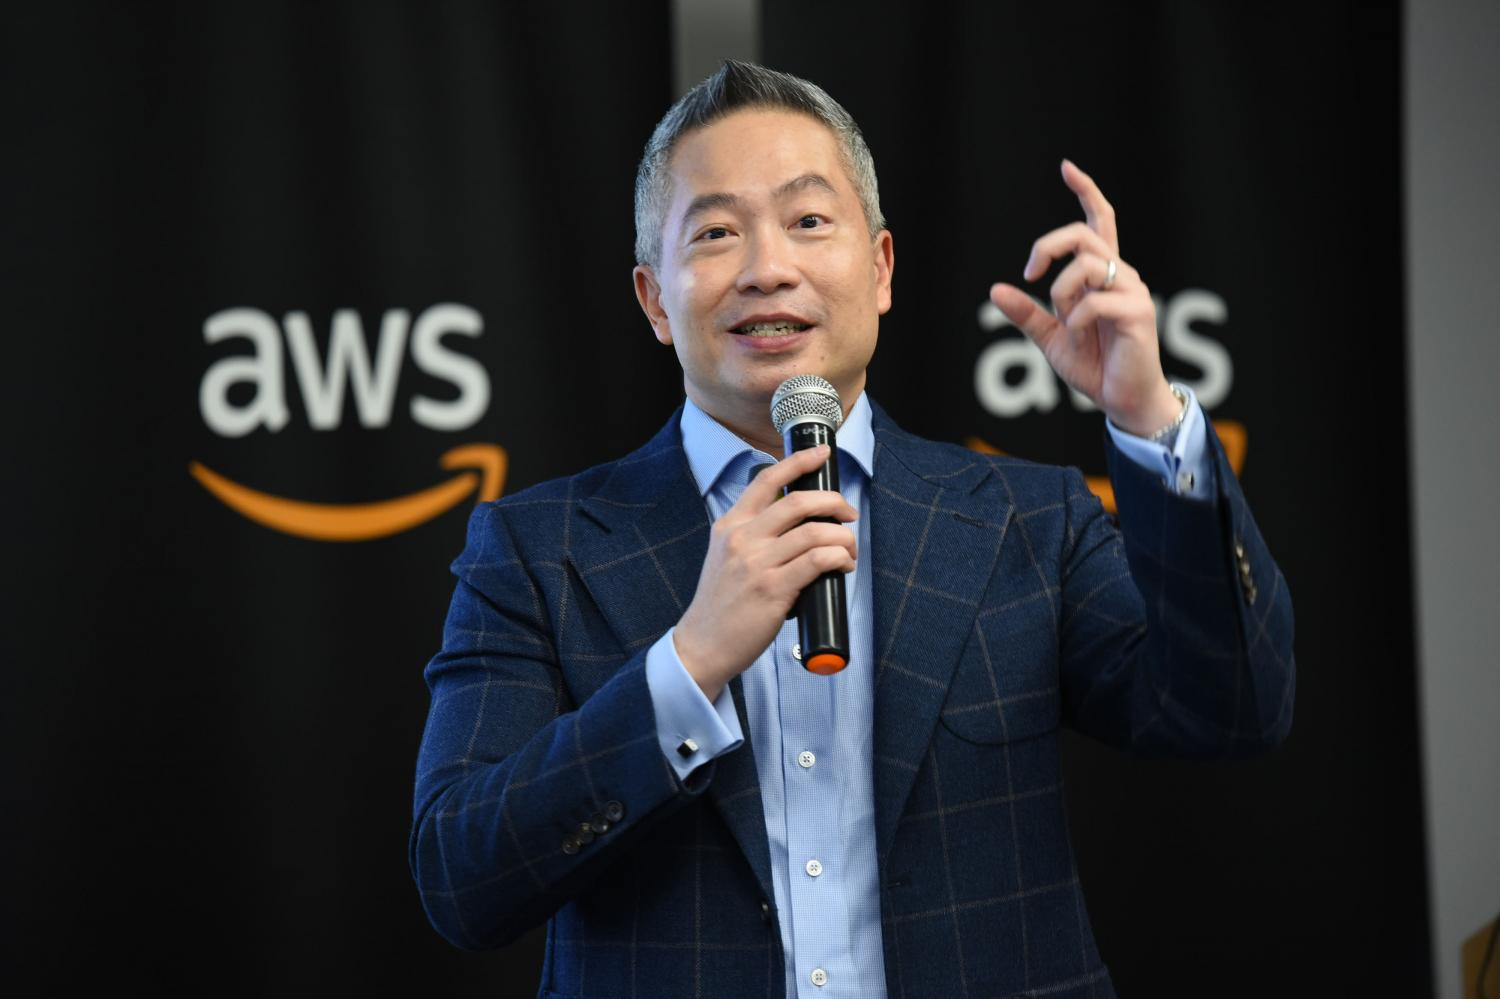 AWS expands presence in Thailand